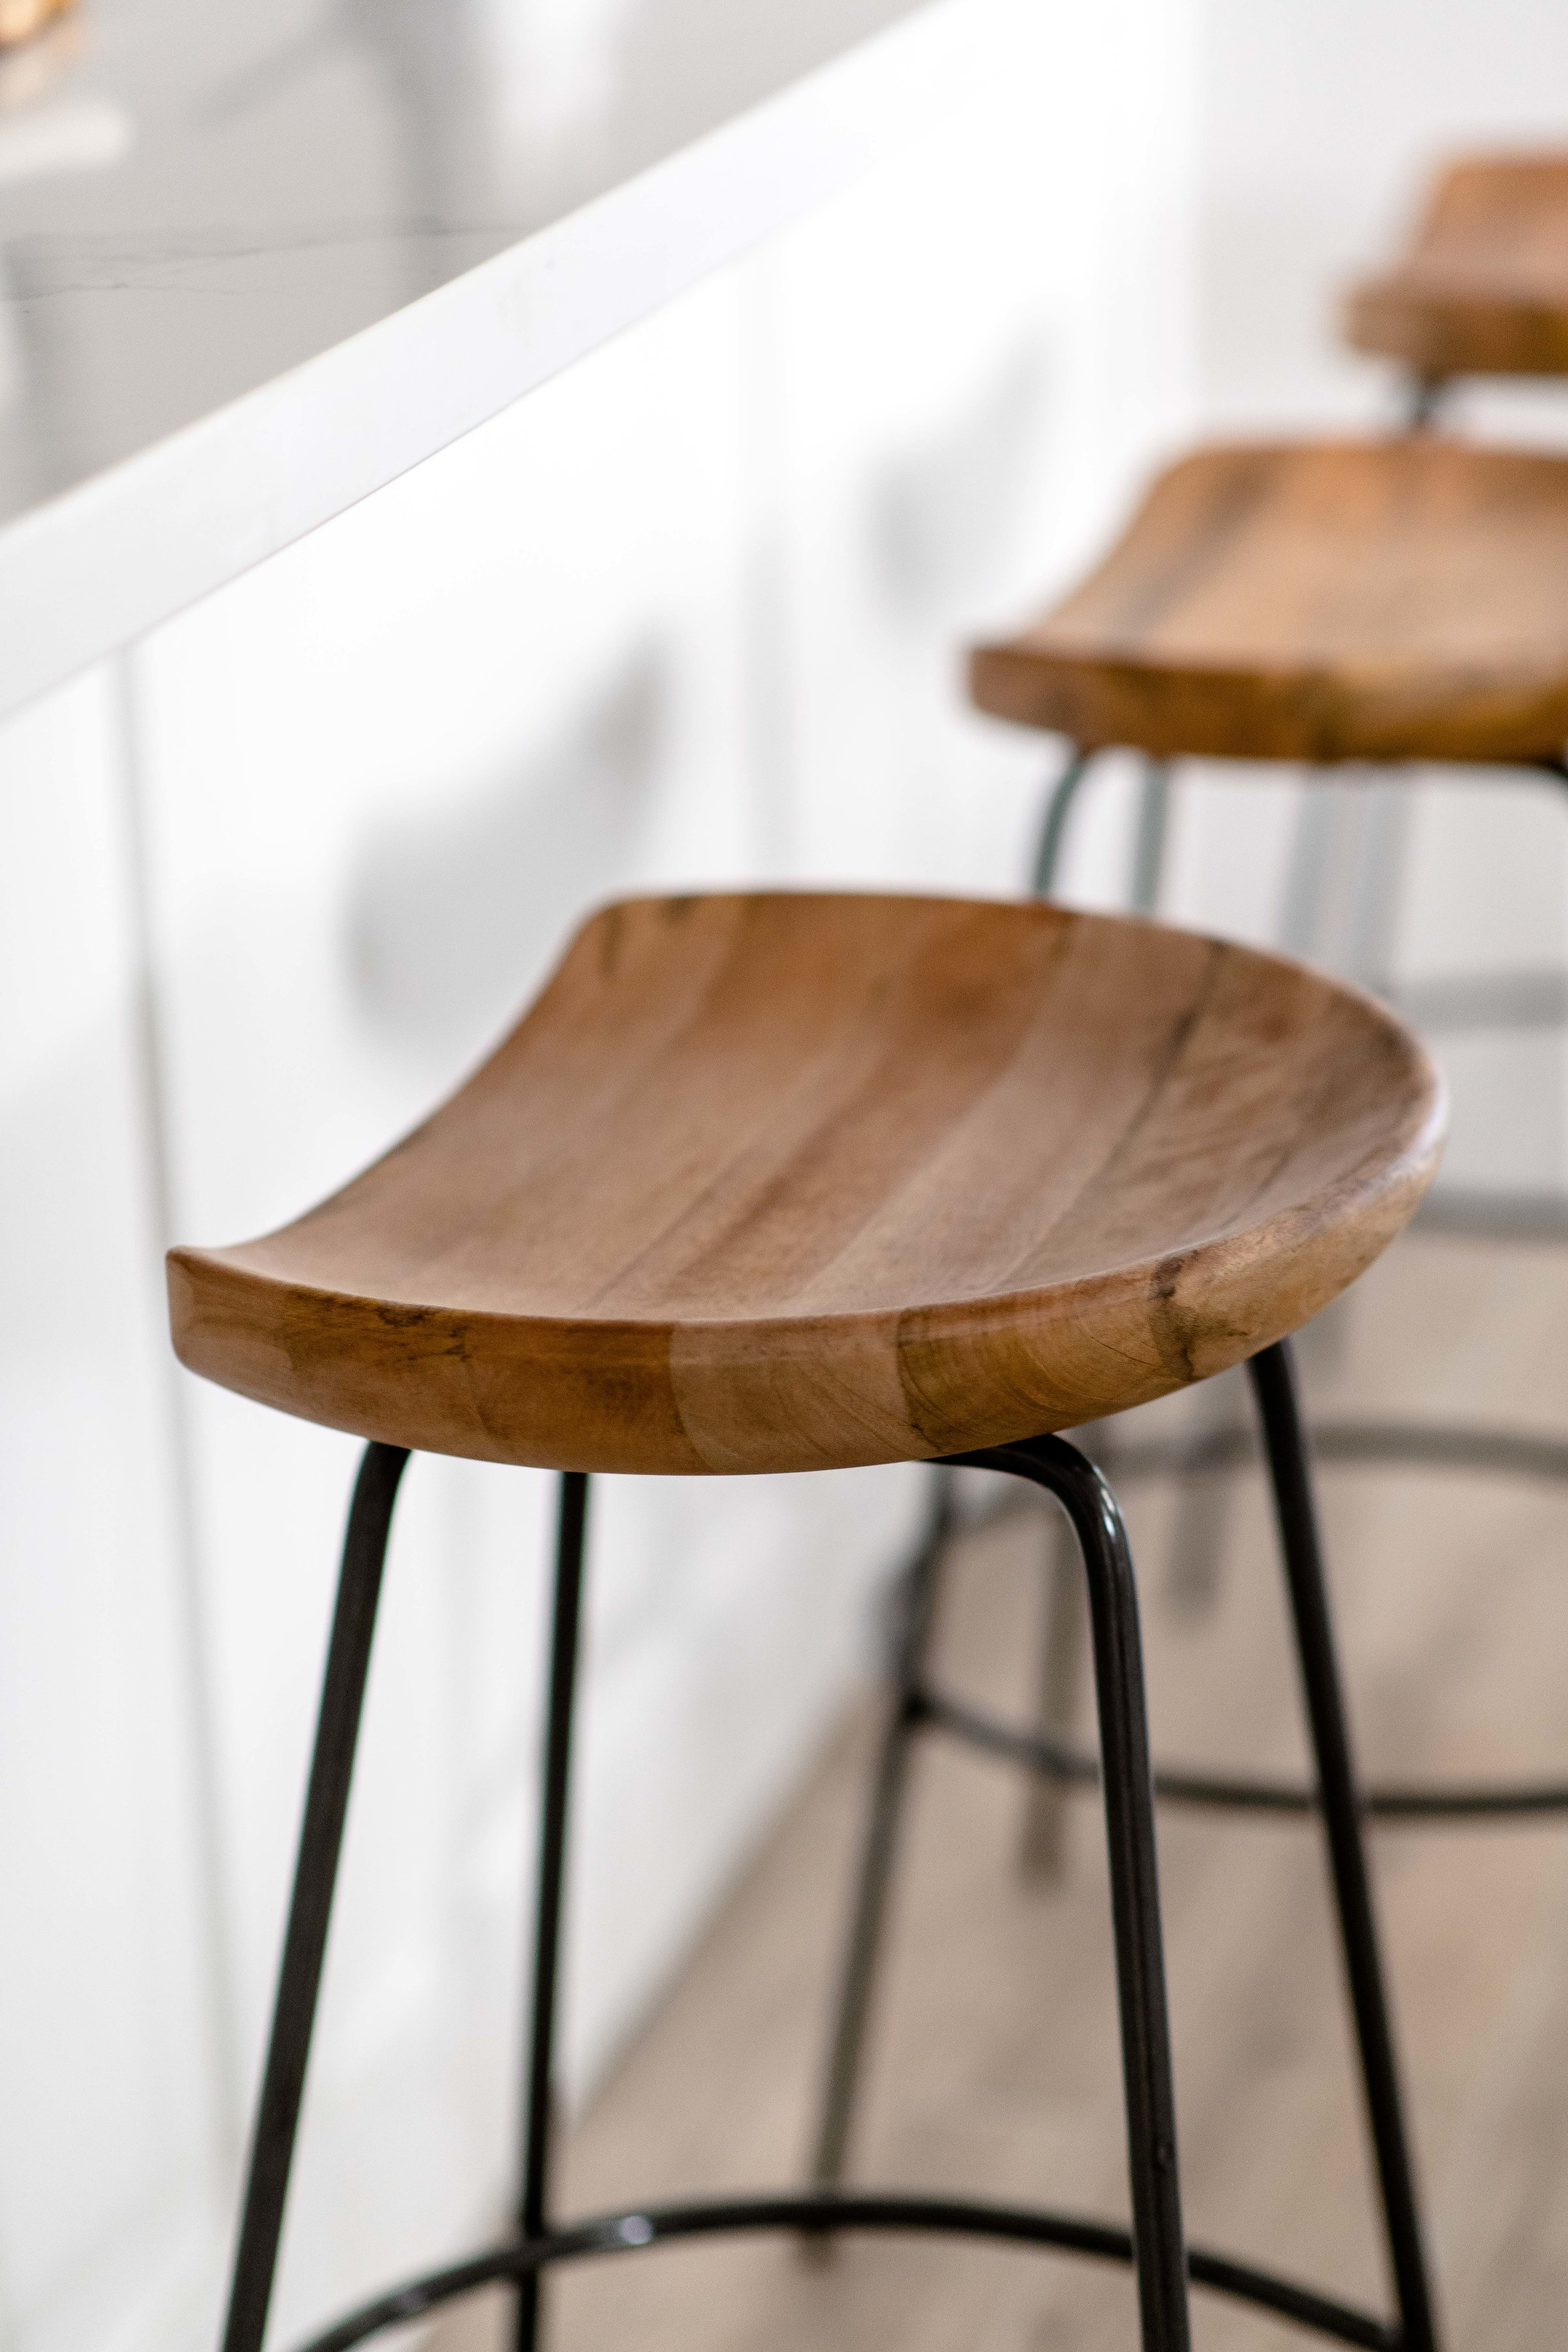 wood and metal barstools - the habitat collective interior design - #projectpeachy